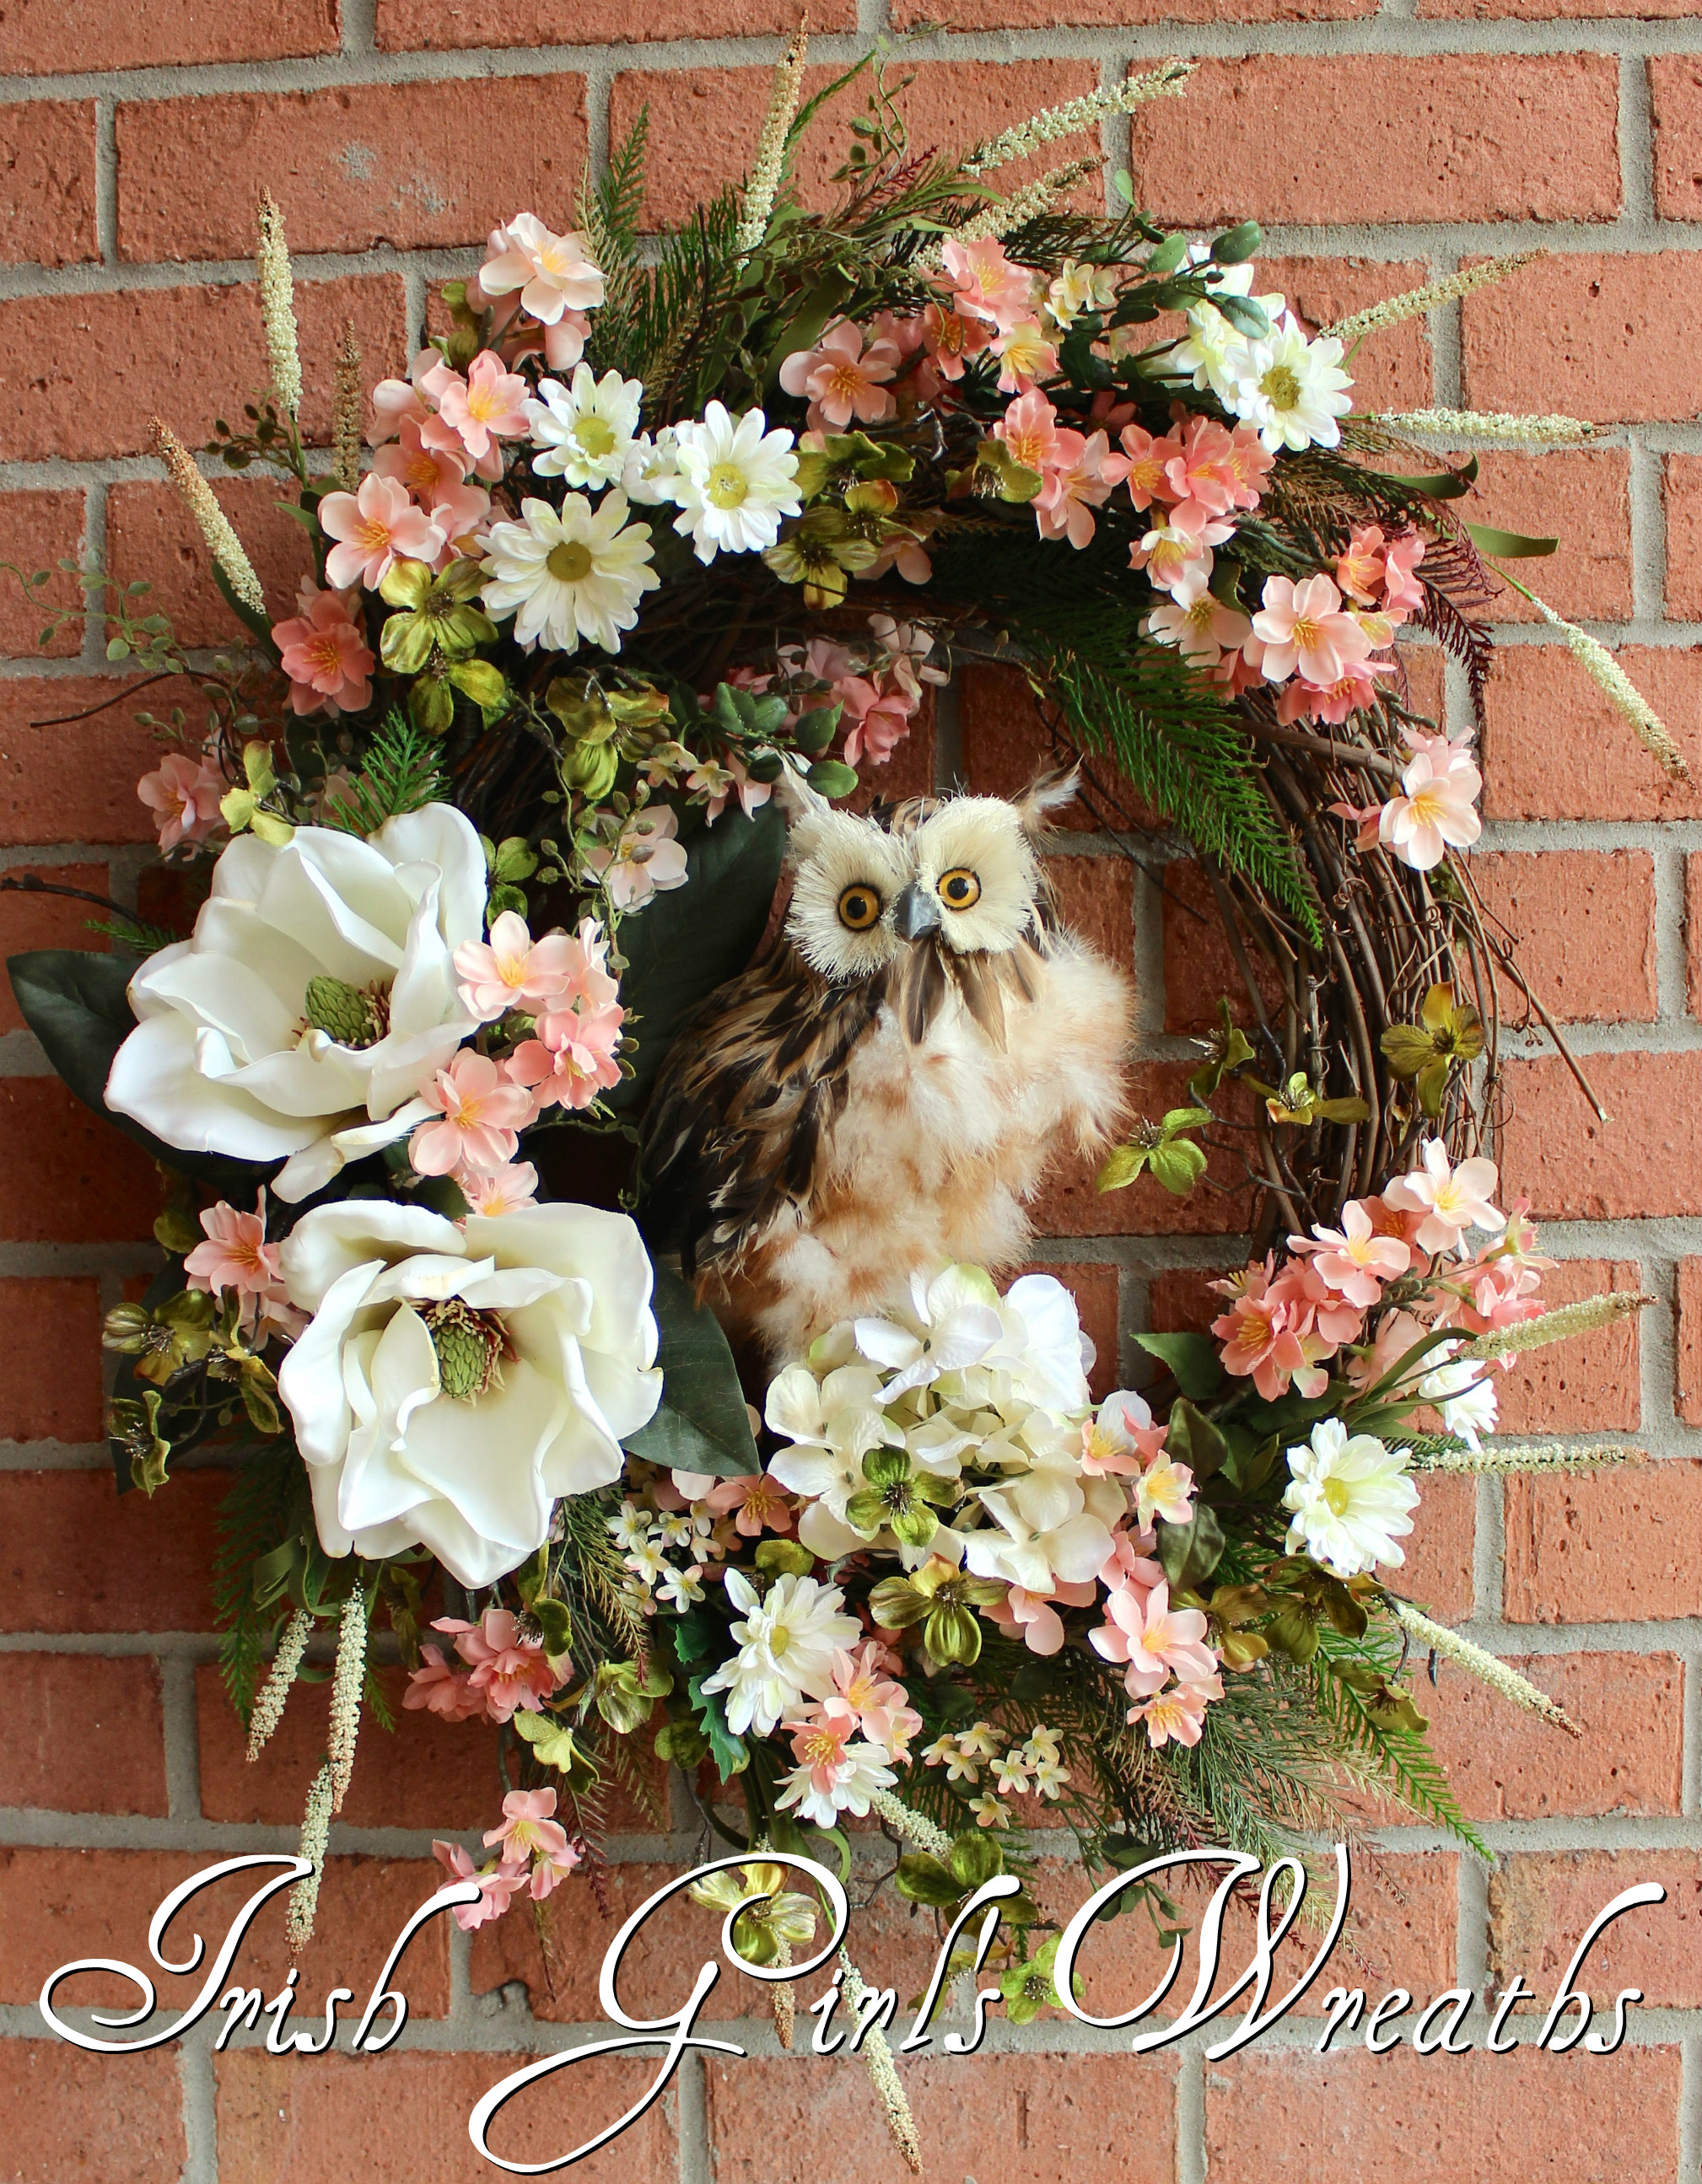 Large Spring Blossom Owl Wreath, Peach Blossoms, Dogwood, Magnolia, Daisy, floral Wreath